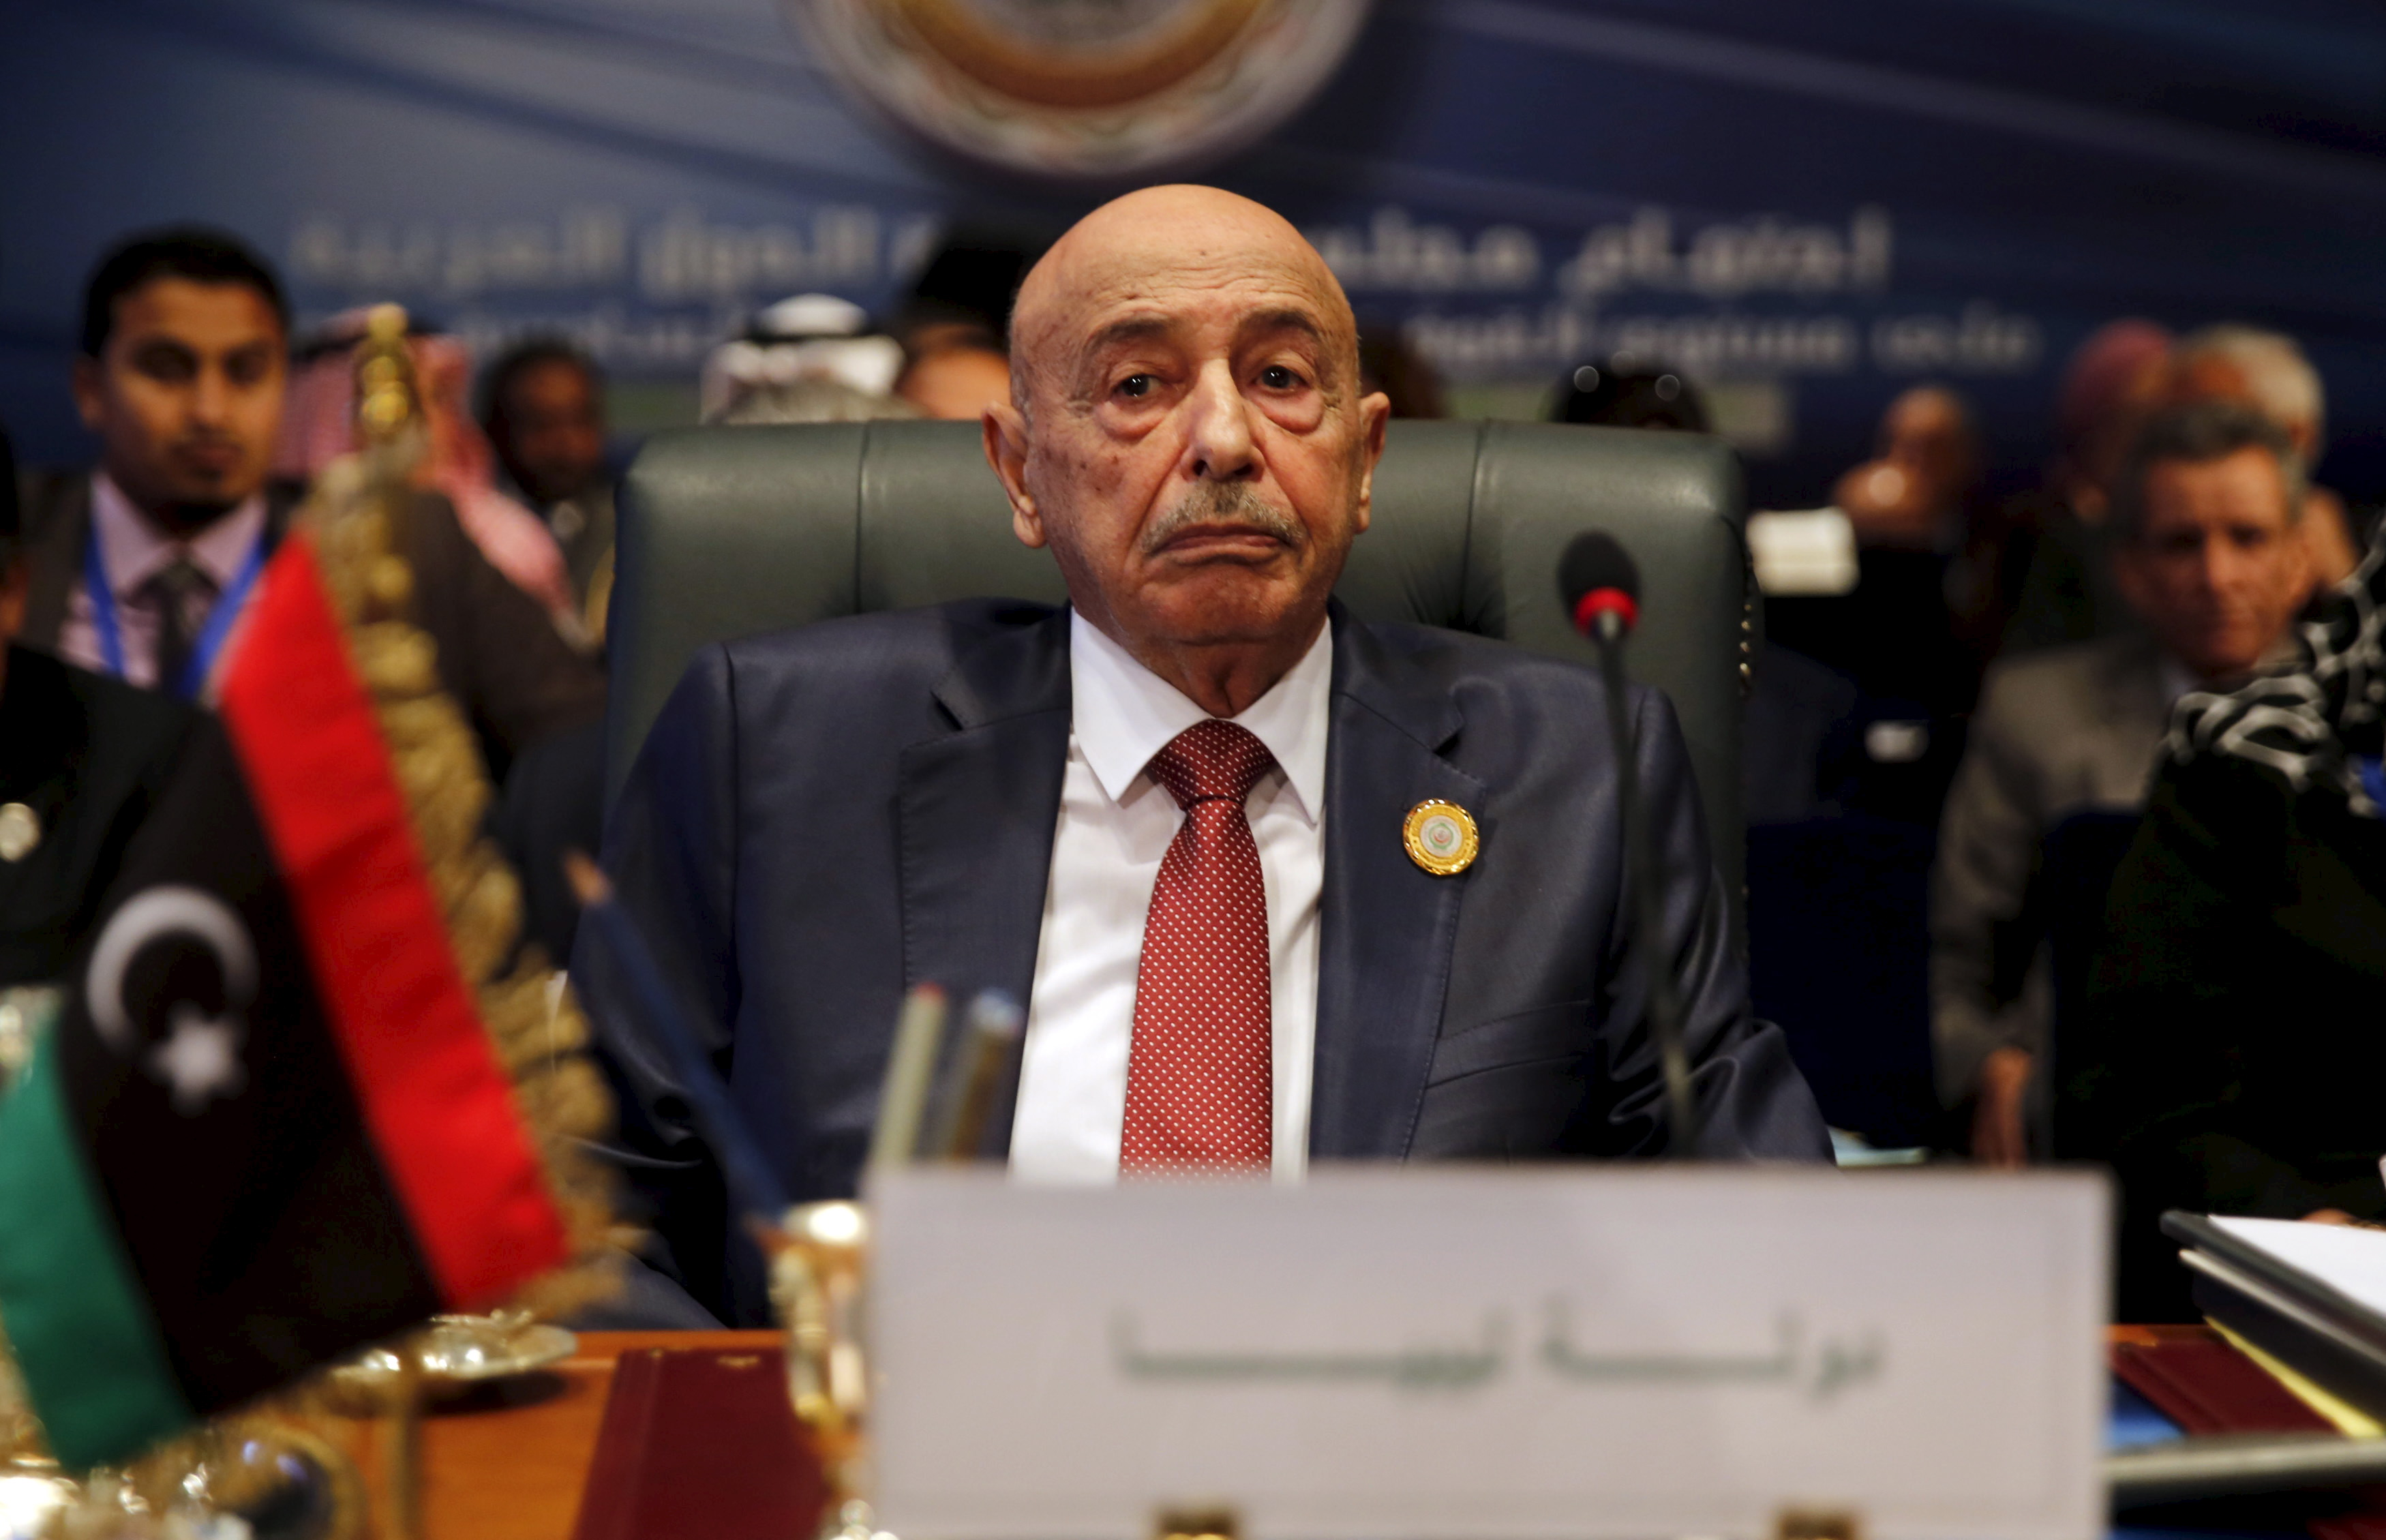 FILE - President of the Libyan House of Representatives Aguila Saleh attends the closing session of an Arab summit in Sharm el-Sheikh, in the South Sinai governorate, south of Cairo, March 29, 2015.